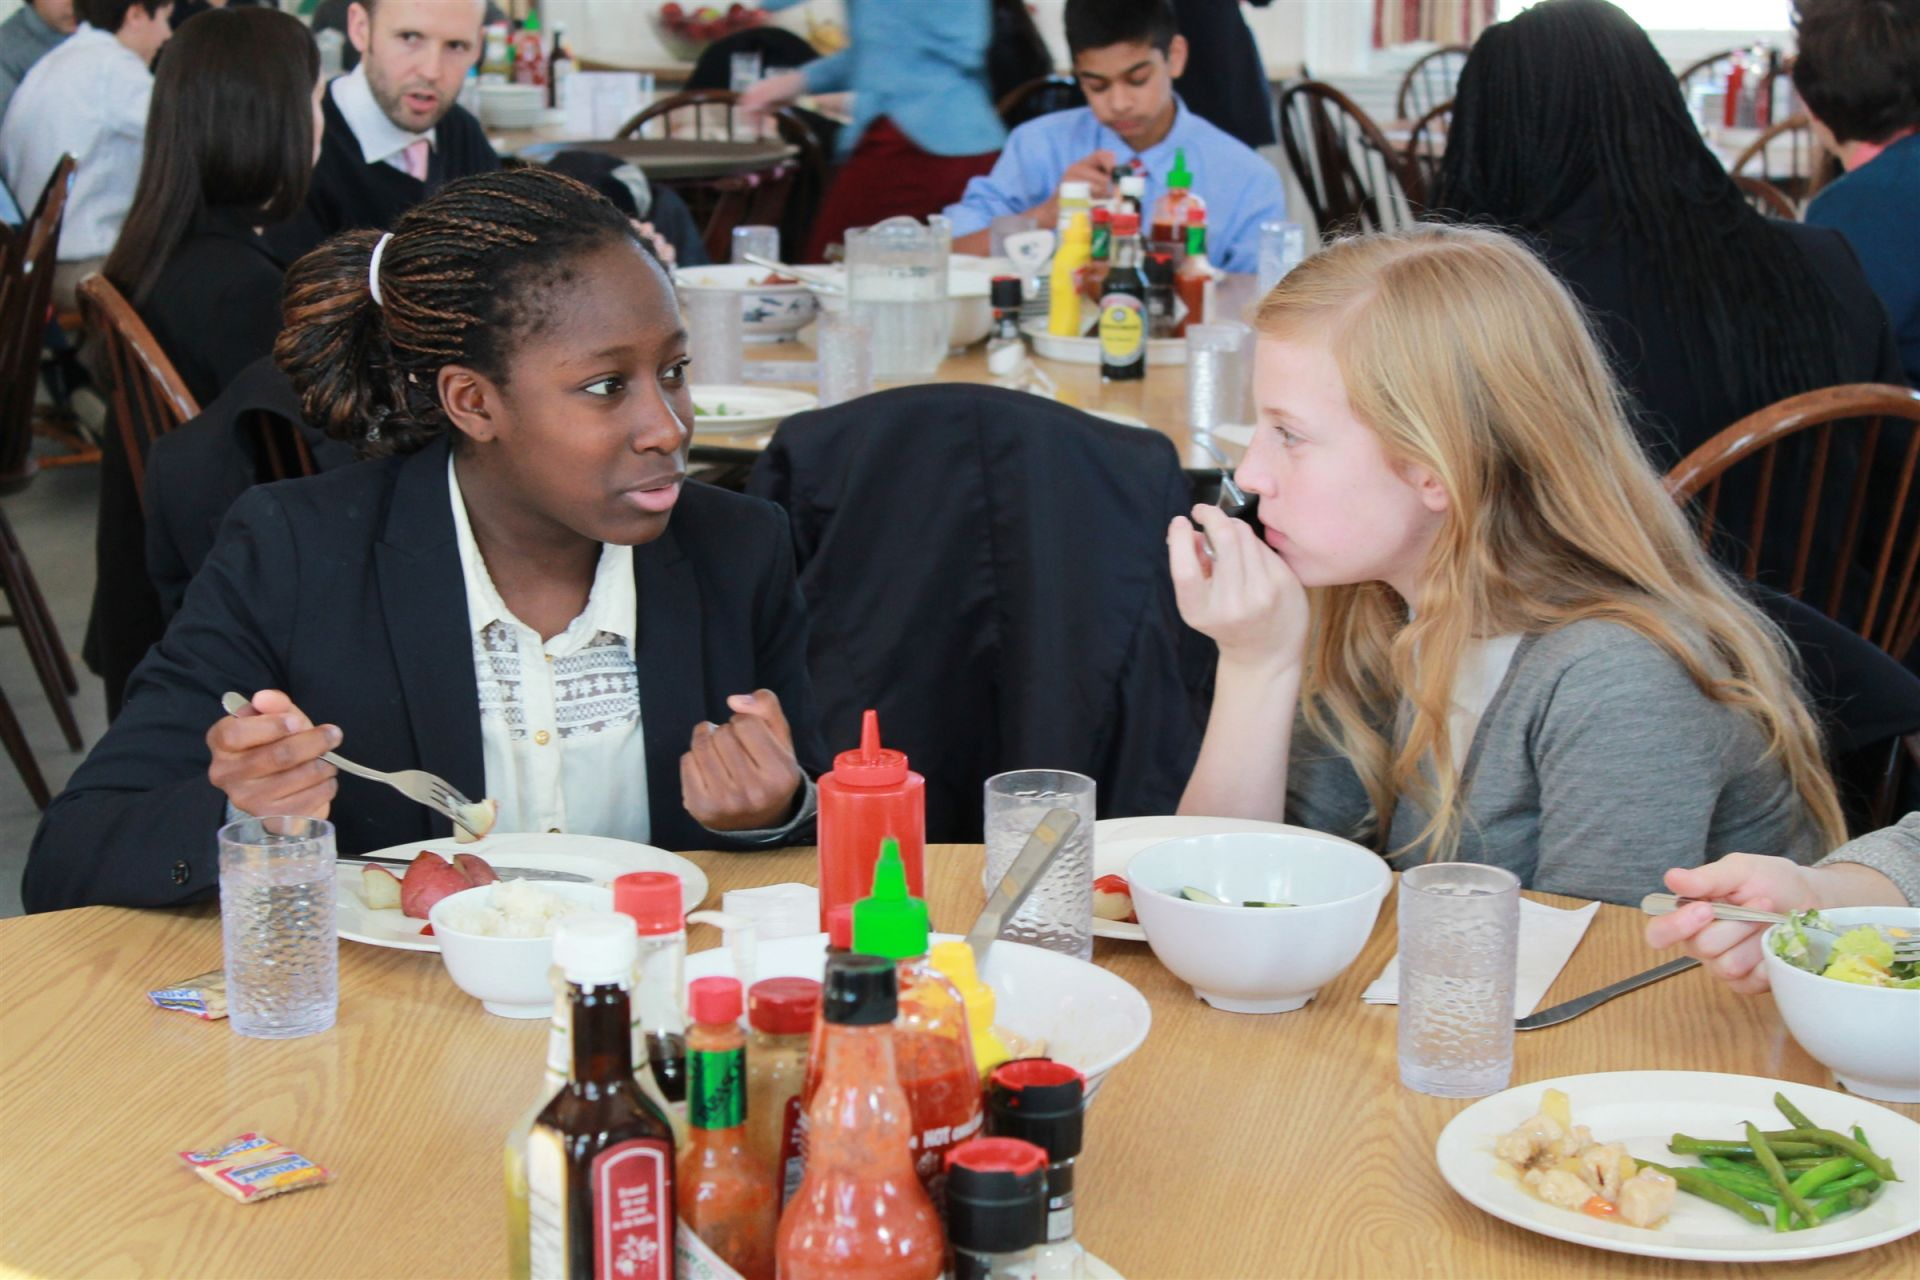 Upper Schoolers gather each day for a family-style lunch in the Dining Room. Students eat meals with classmates and teachers, and it's a great time of day to relax, reconnect with friends, and reinforce the importance of courtesy and manners. Students have assigned seating at meals, at tables that are supervised by Fay faculty and staff, as a way to encourage students to make new friends and build connections across the community.